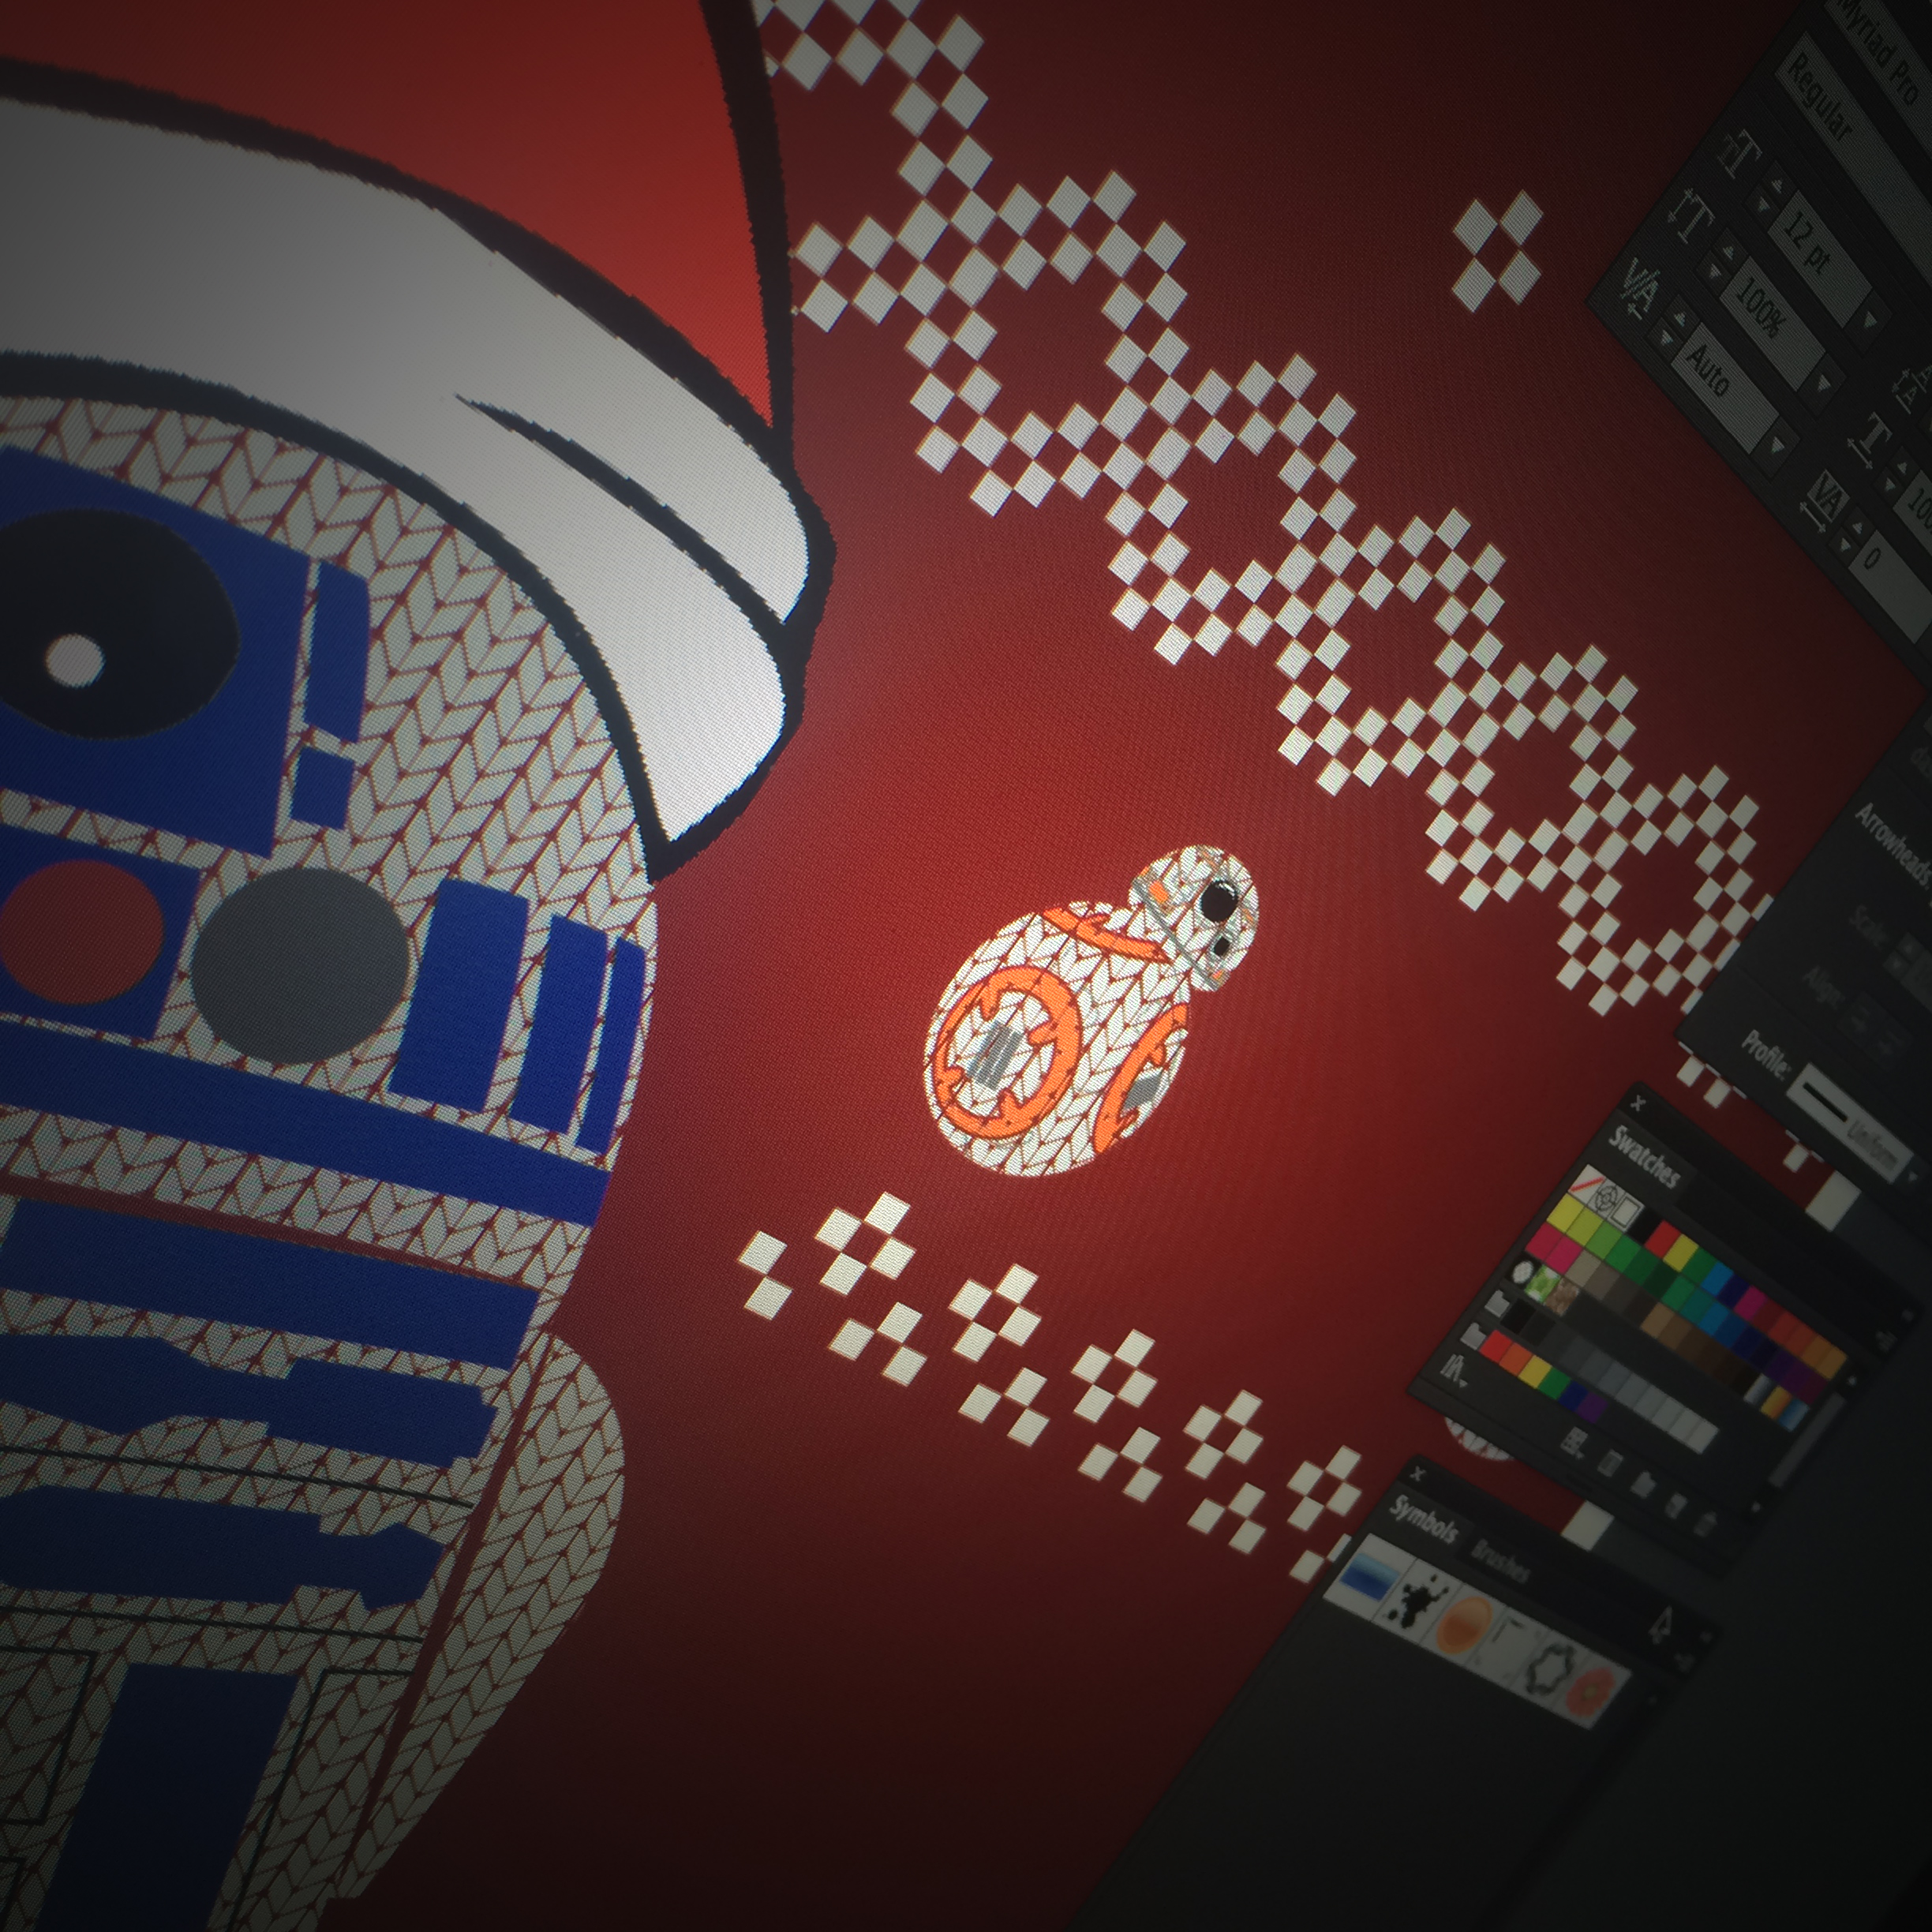 R2-D2 Graphic Design